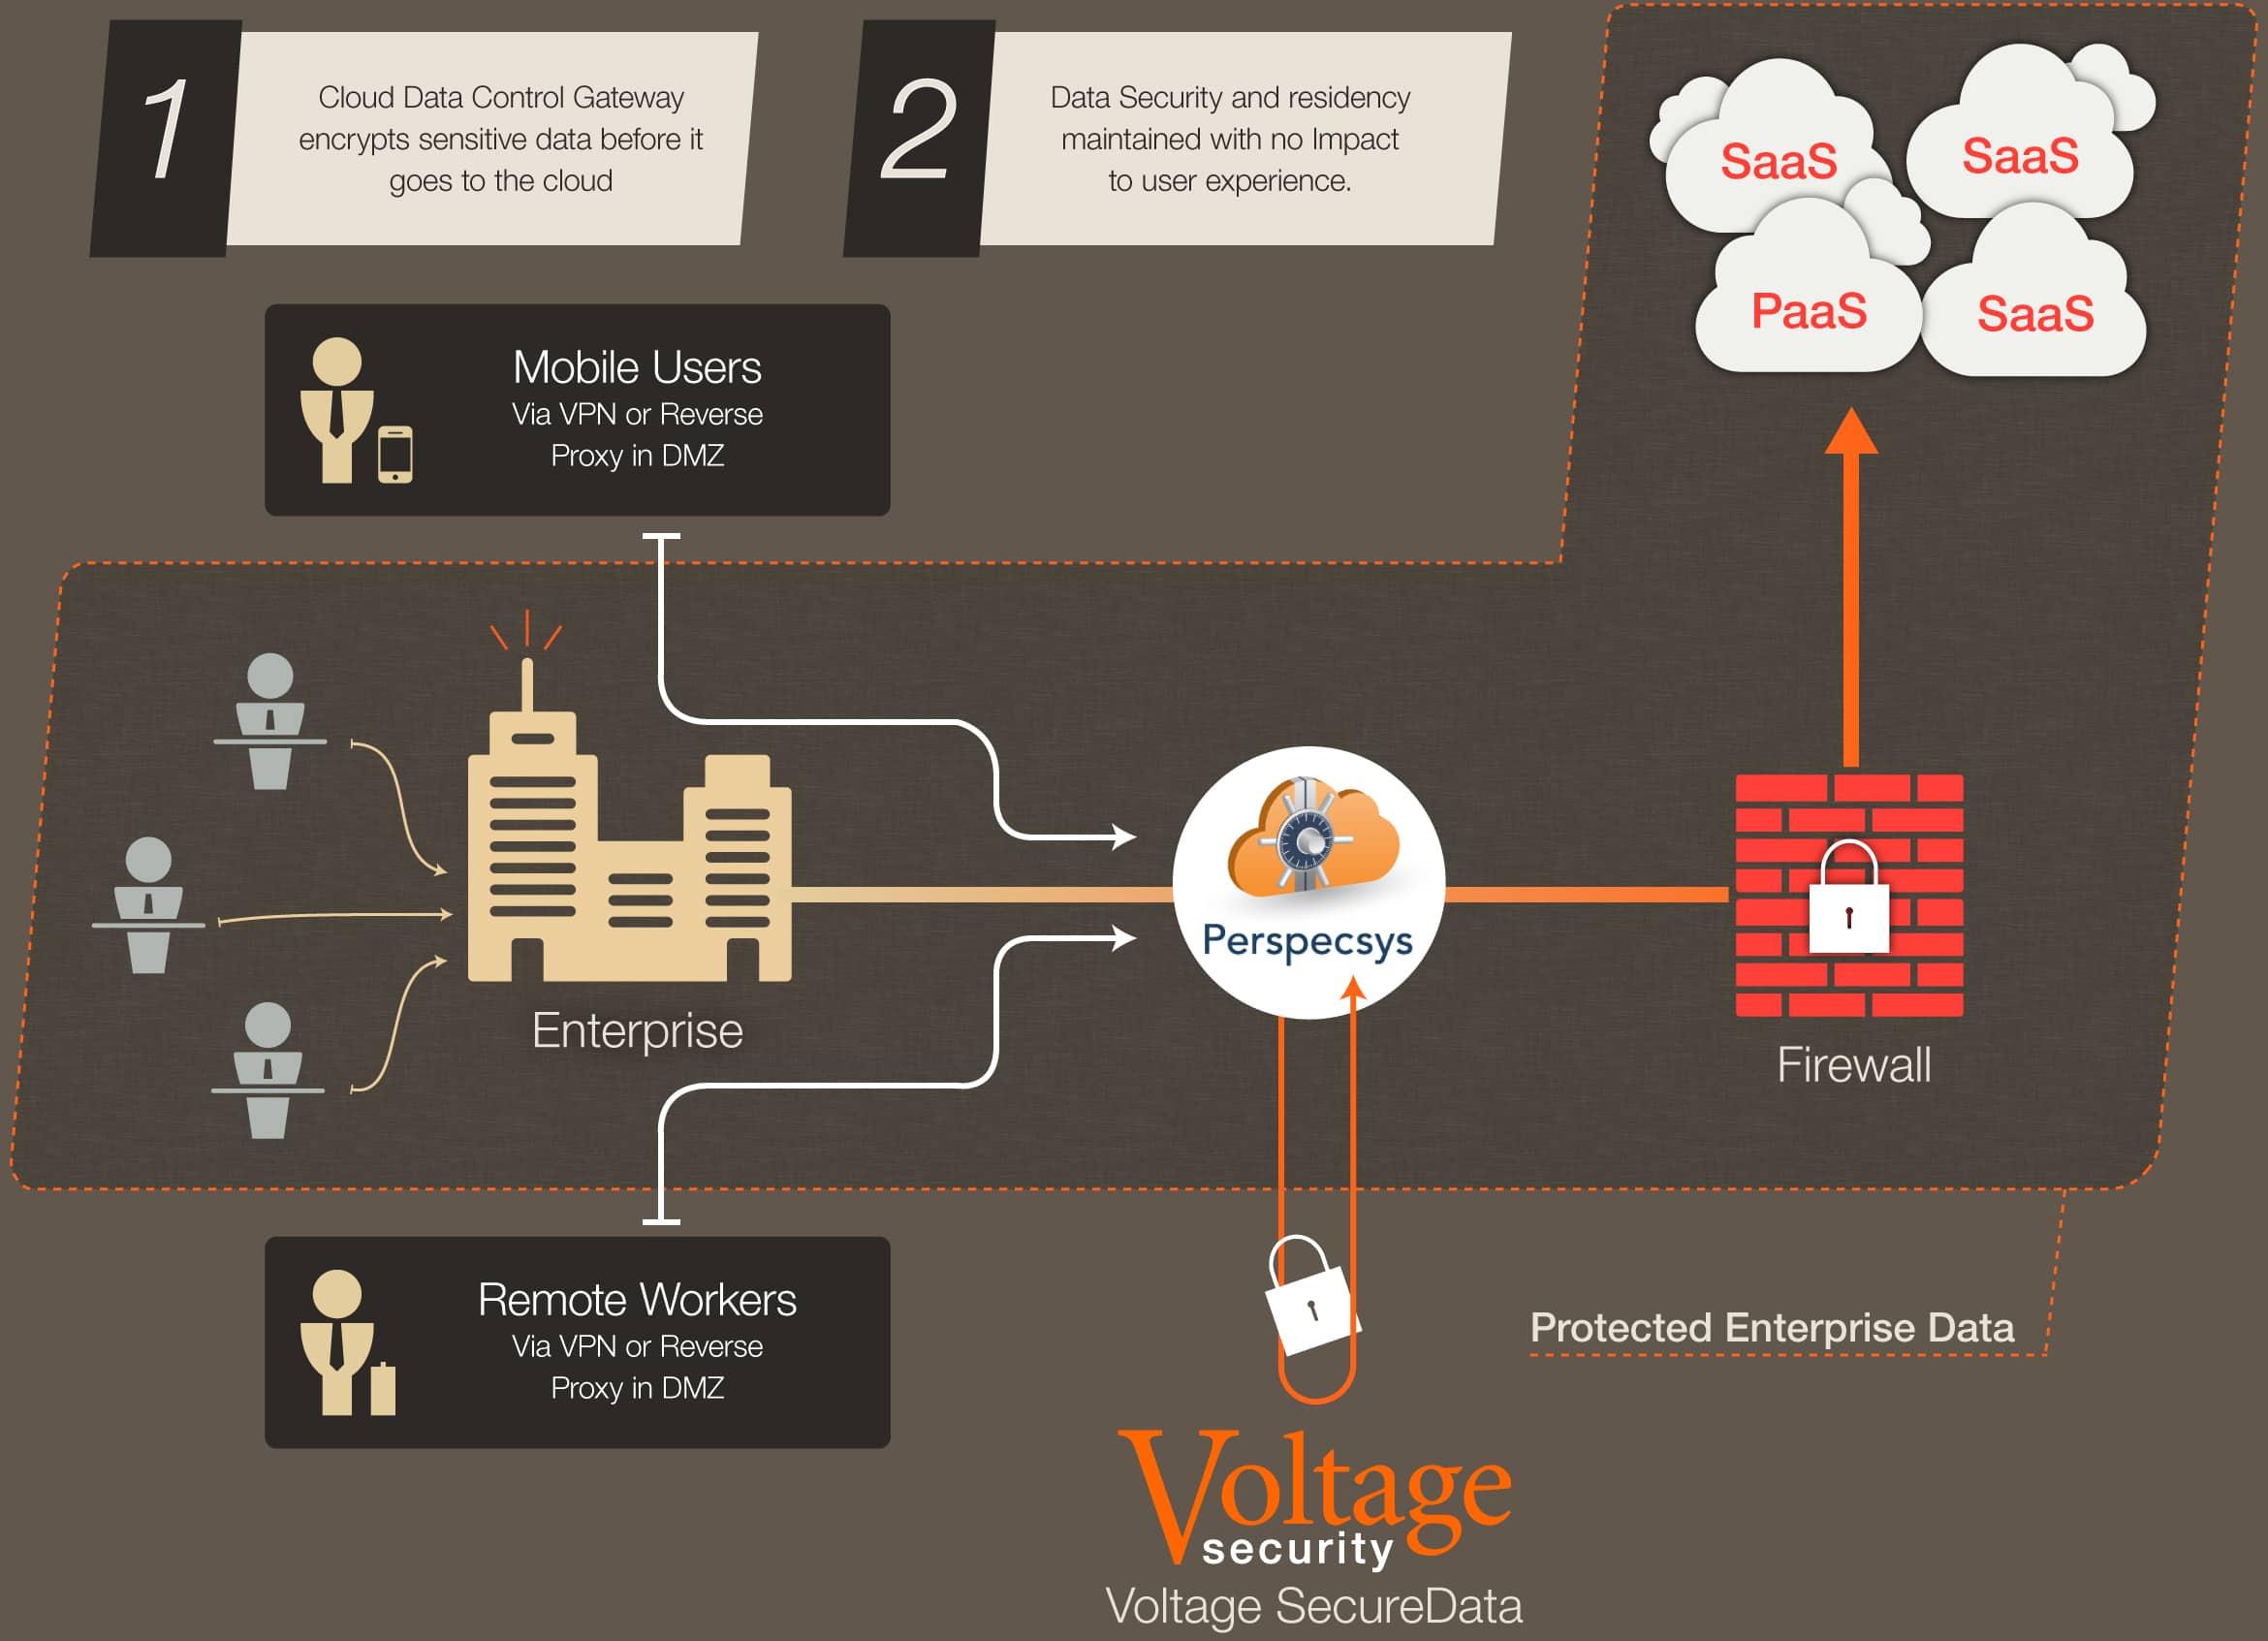 Voltage bring strong encryption security and flexbility to increase enterprise cloud adoption